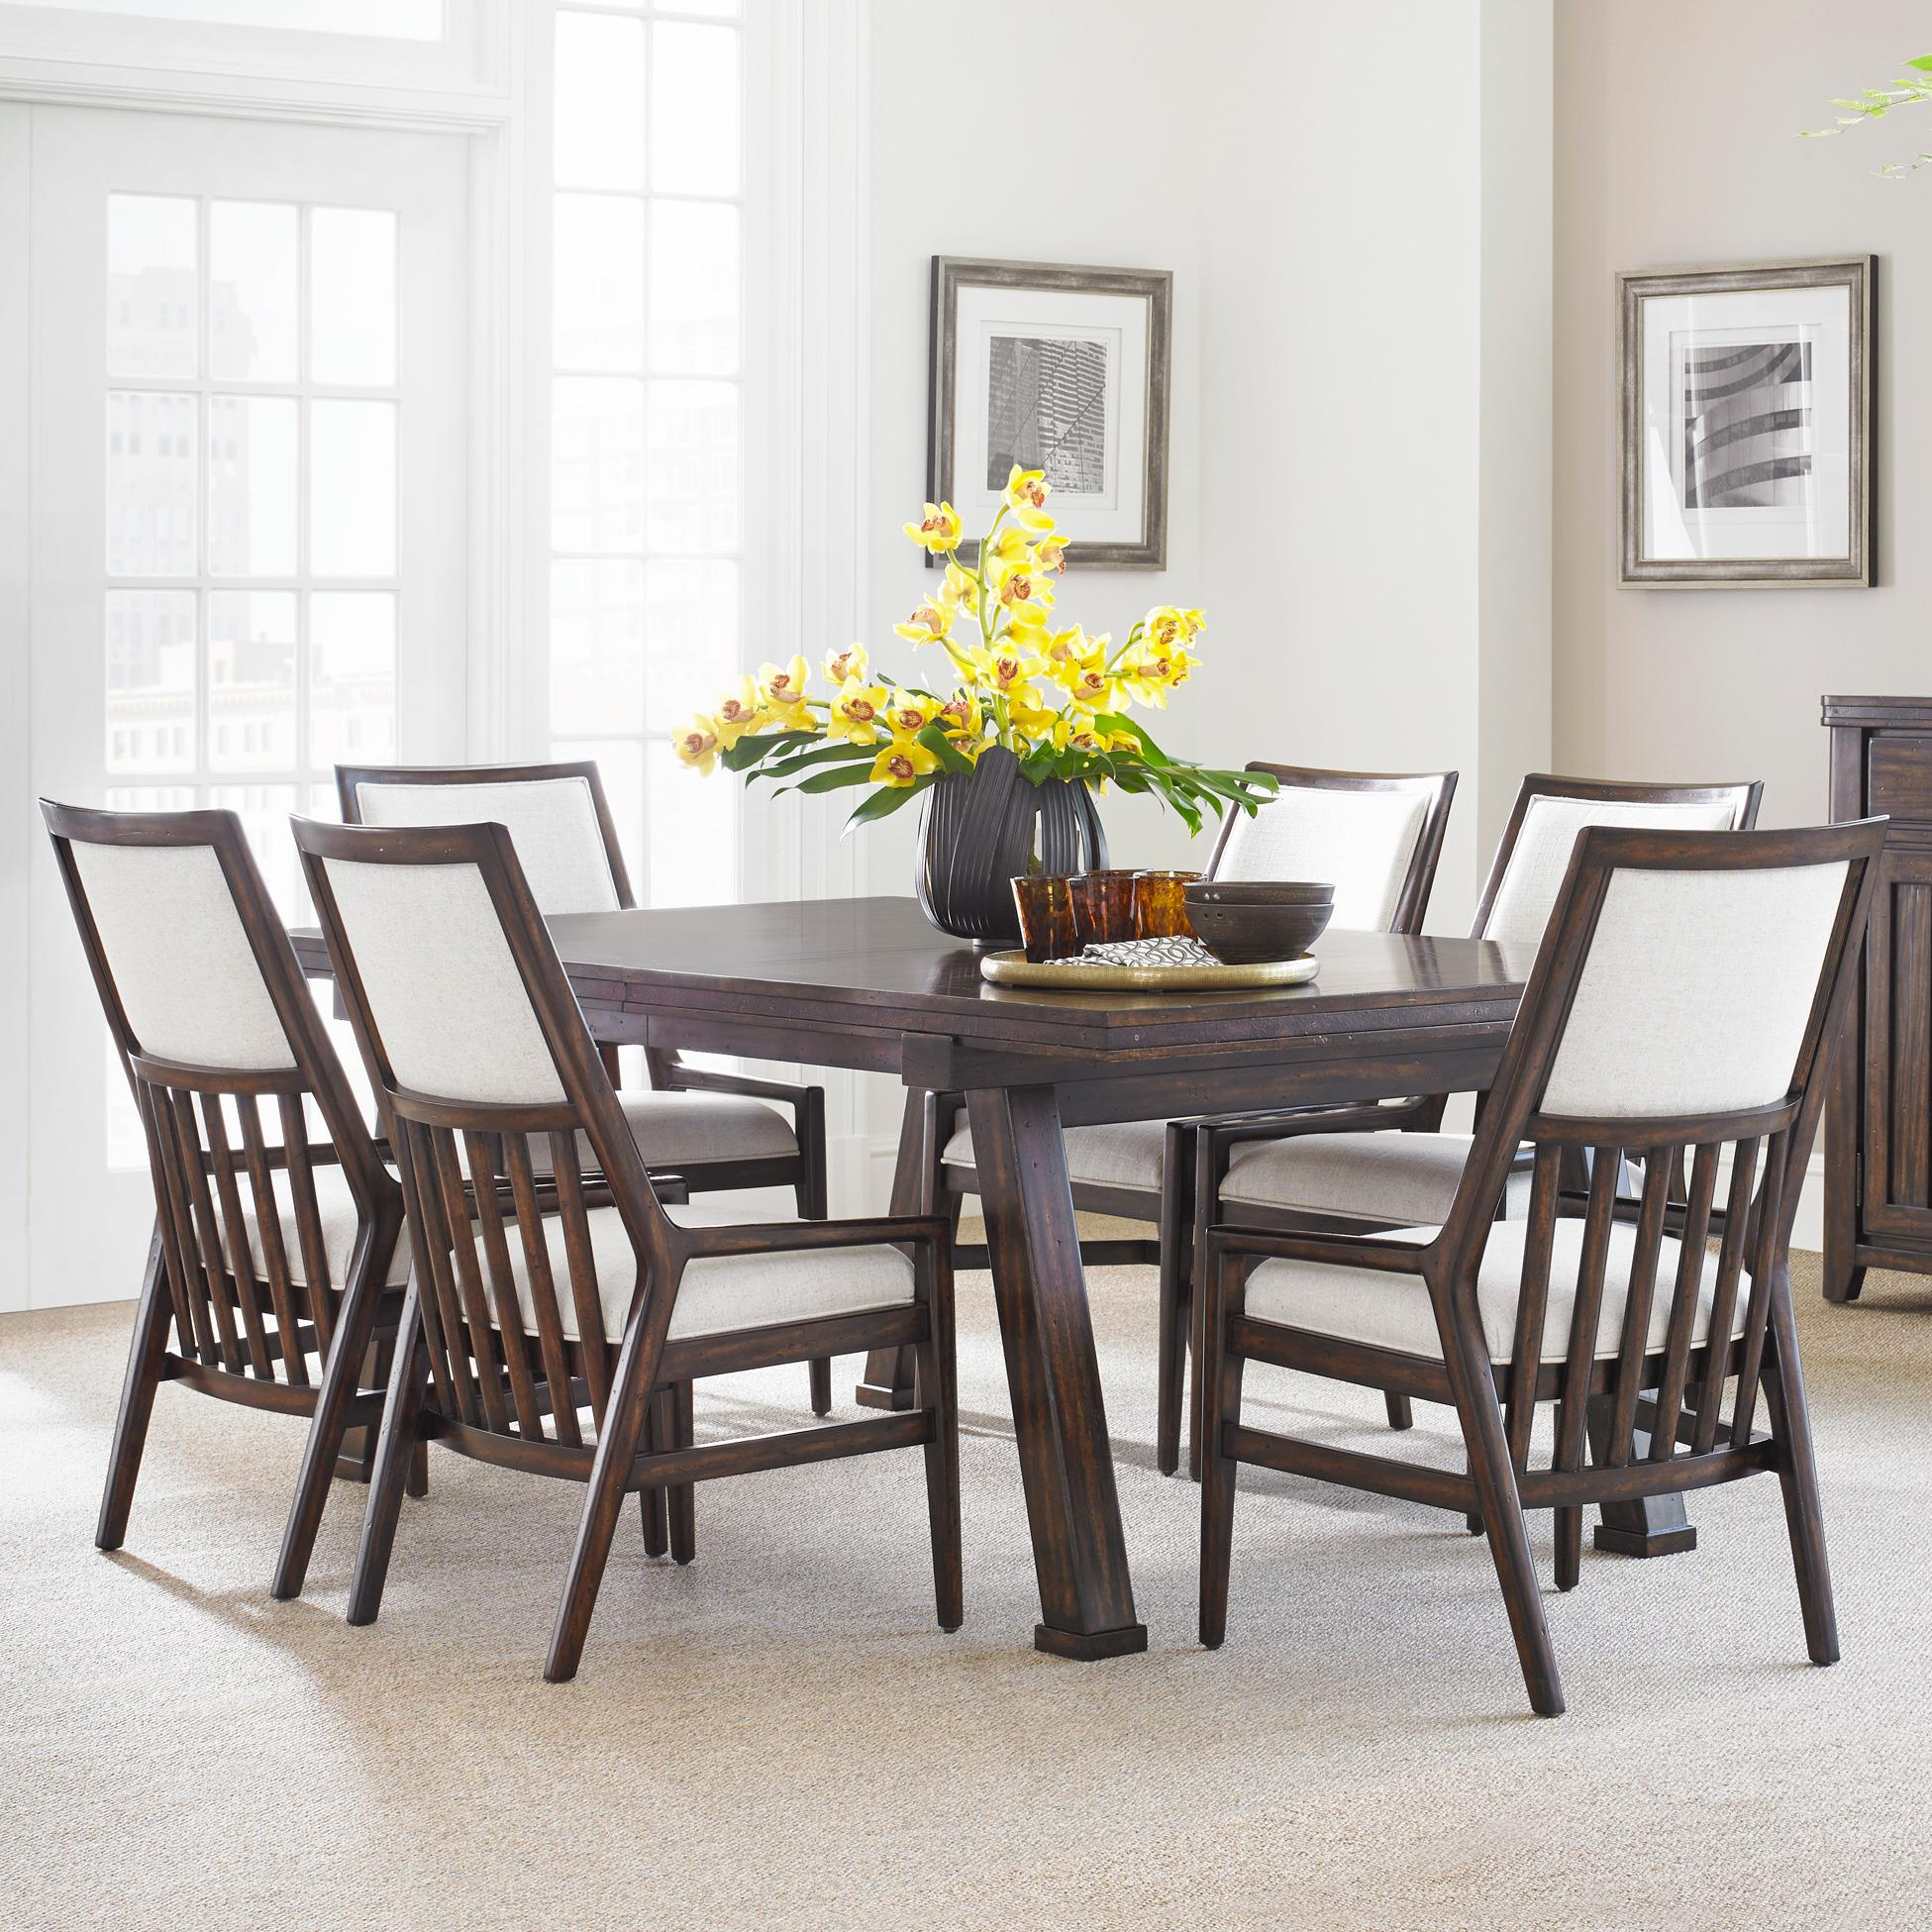 Stanley Furniture Newel 7-Piece Rectangular Dining Table Set - Item Number: 484-11-36+6x65